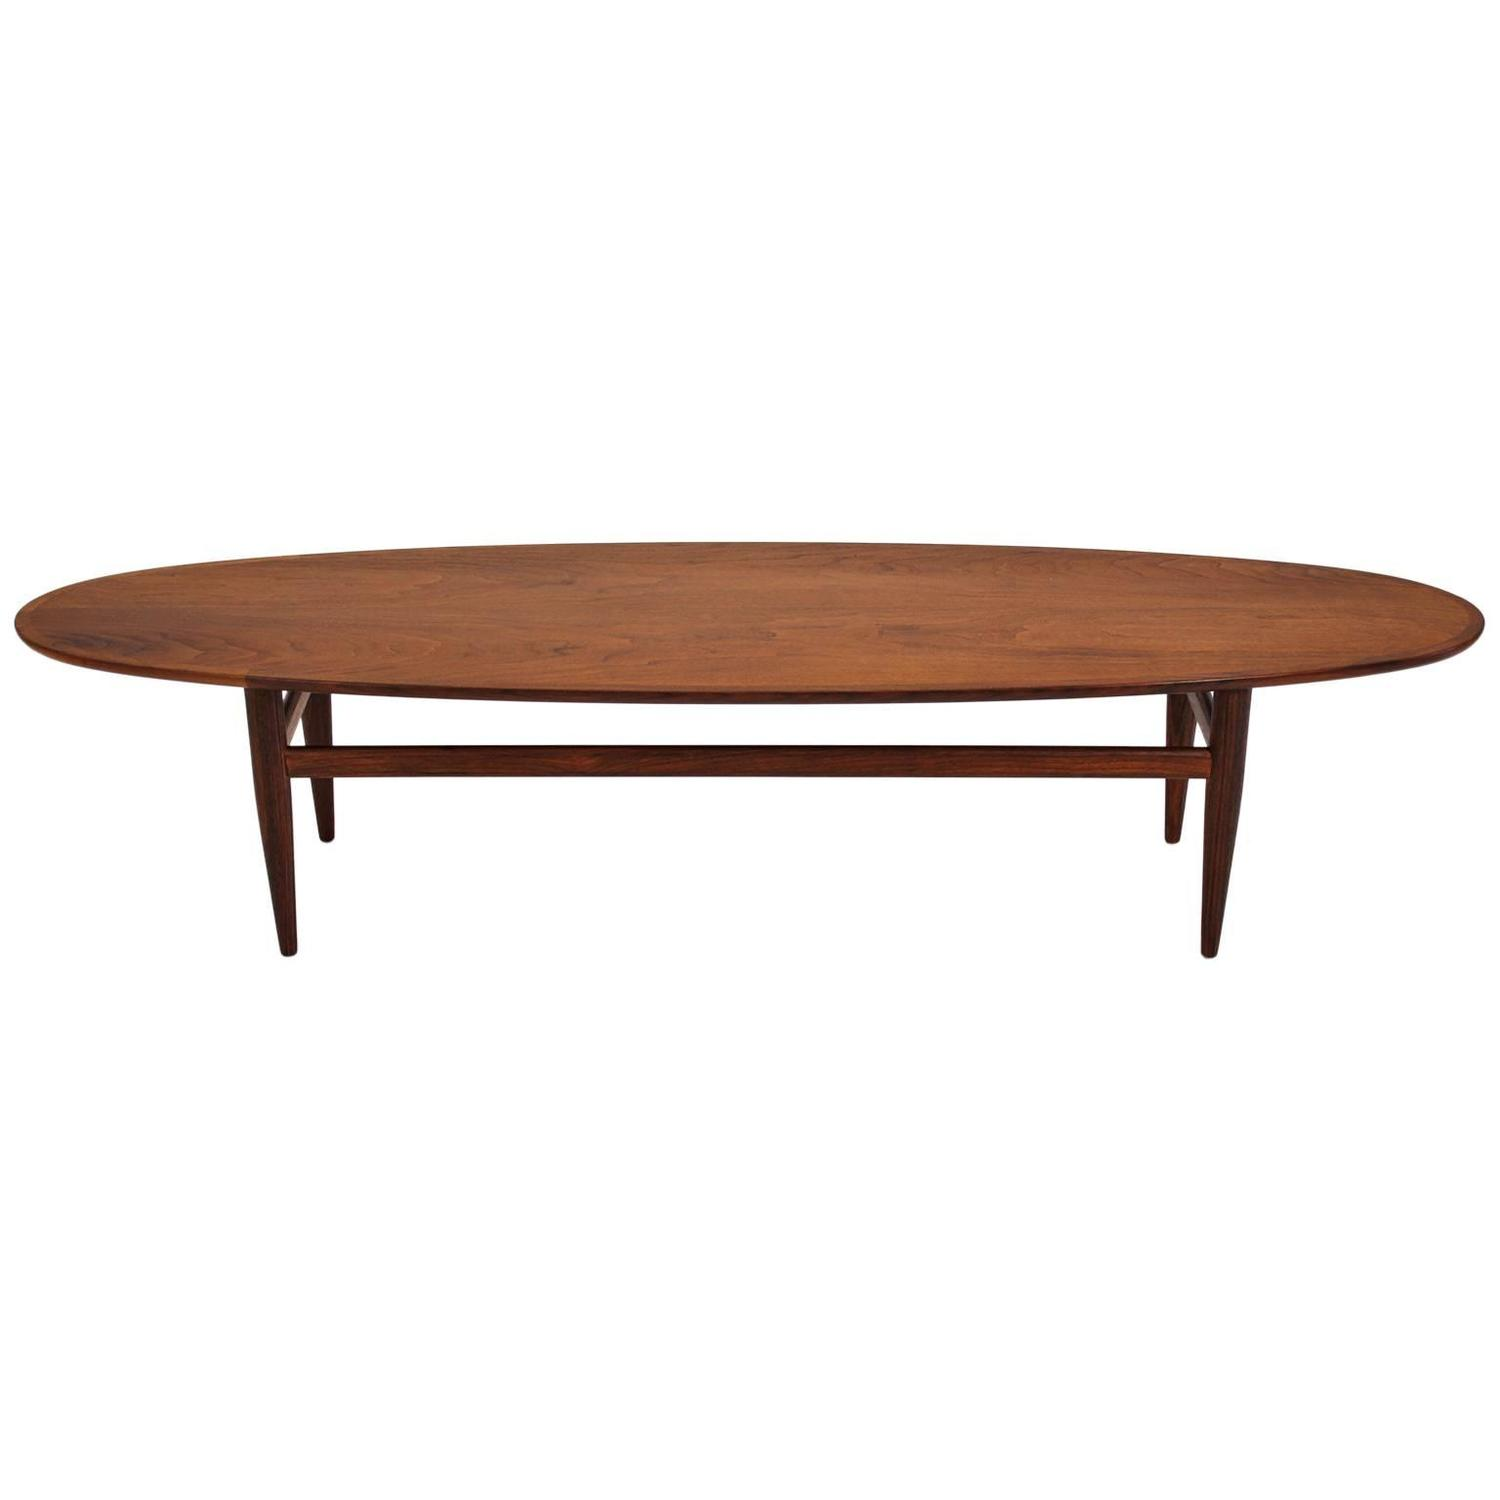 Henredon Modernist Surfboard Walnut Coffee Table At 1stdibs